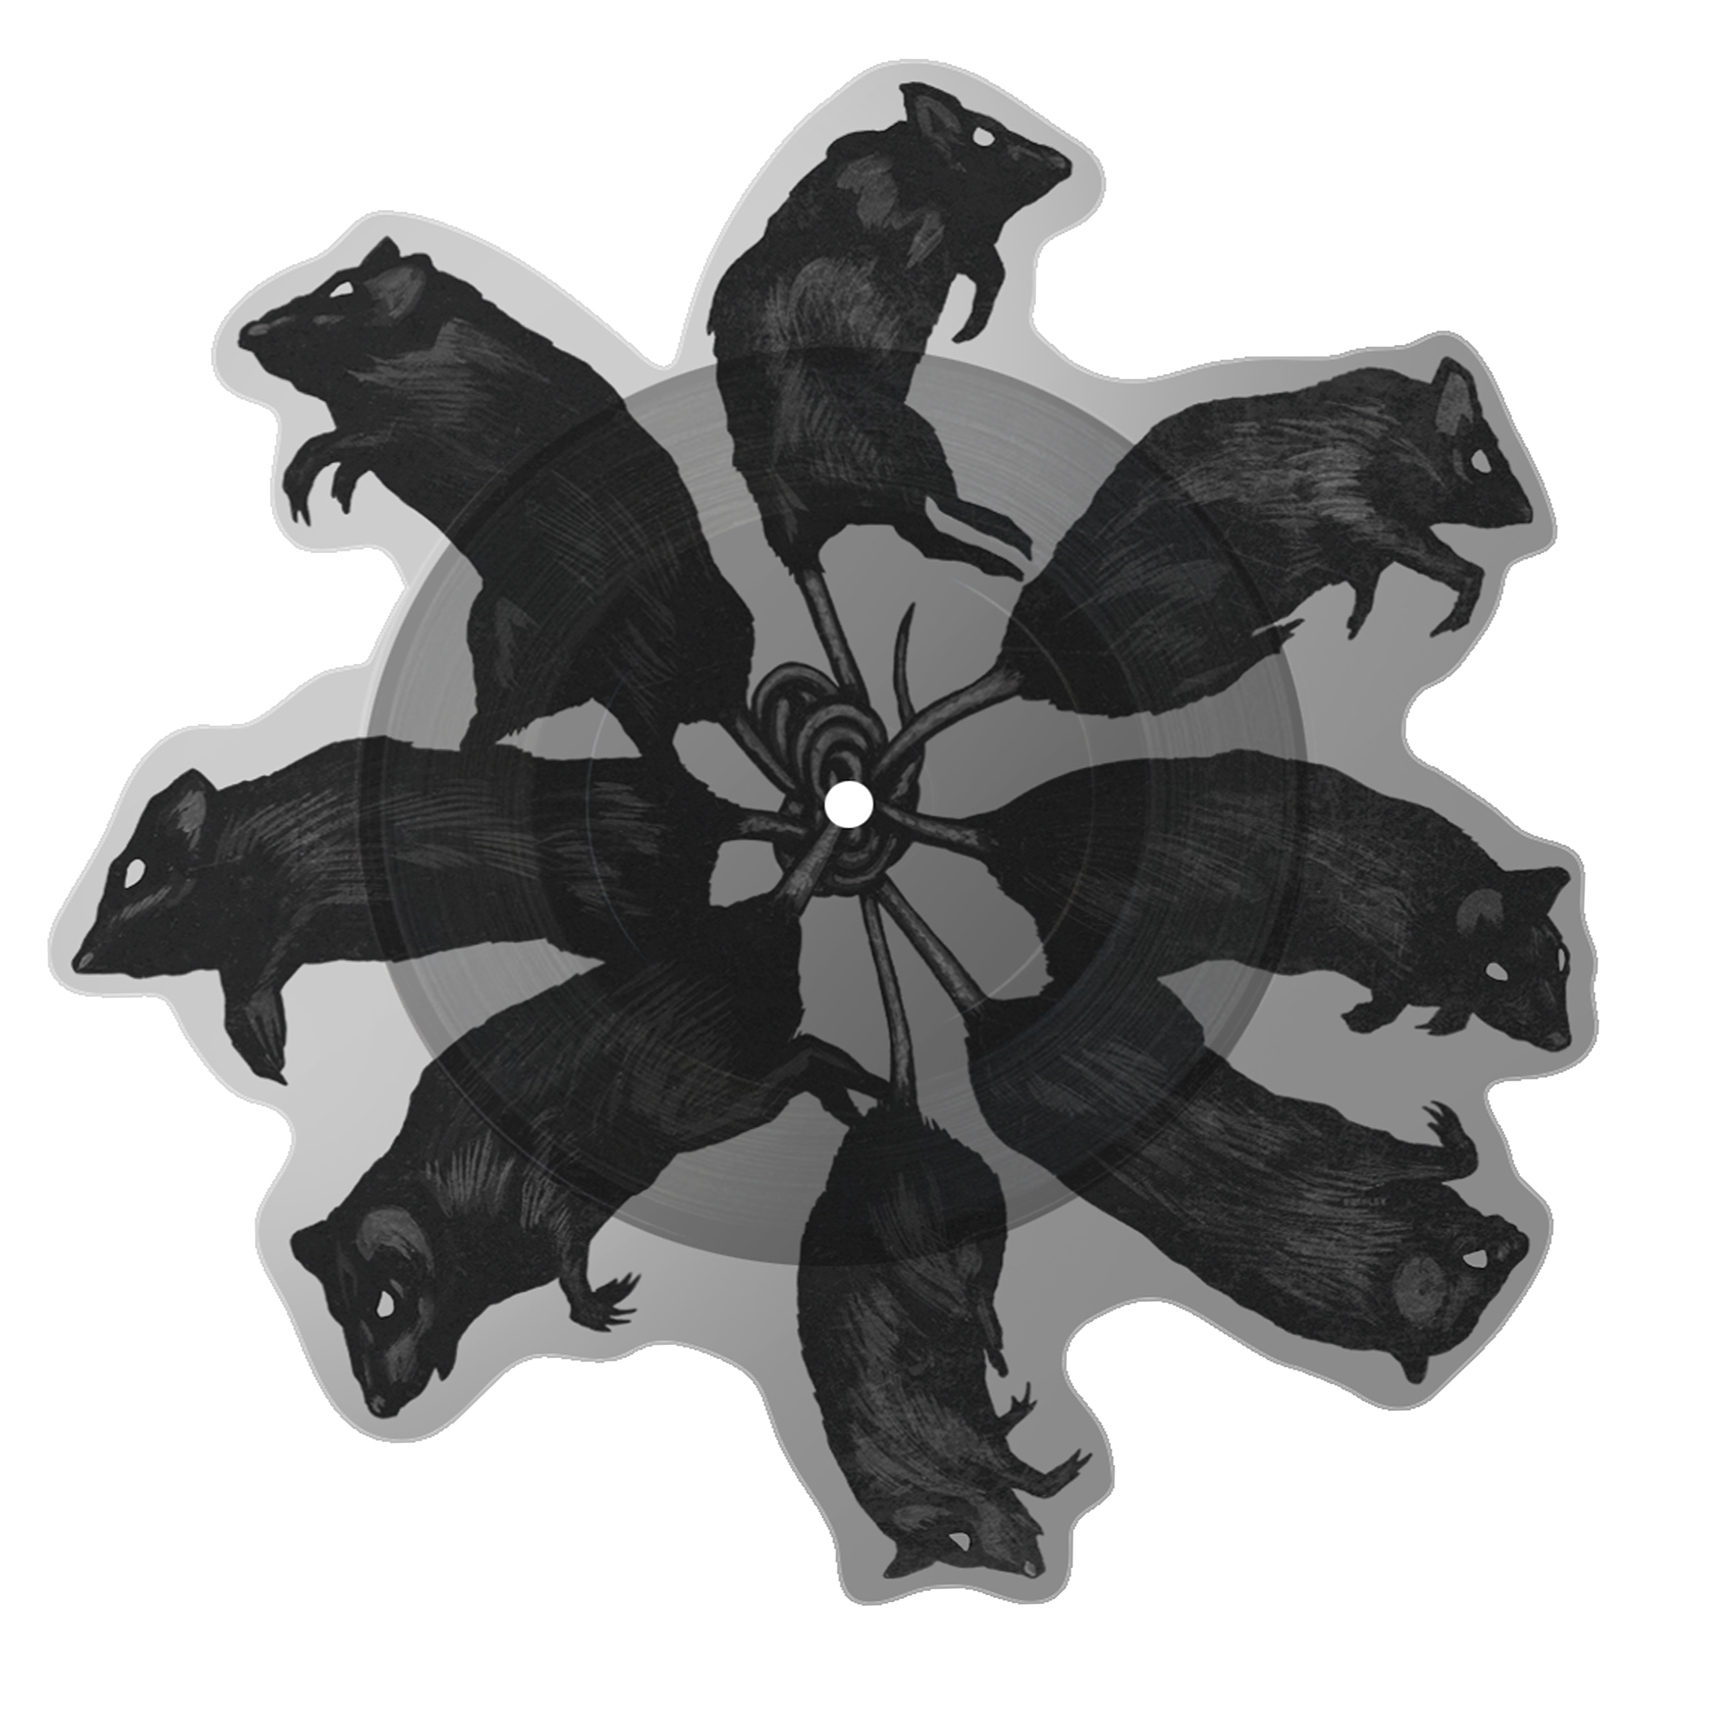 "GHOST | Rats! On The Road 2018 official tour merchandise   10"" picture disc  Acrylic on paper and digital"